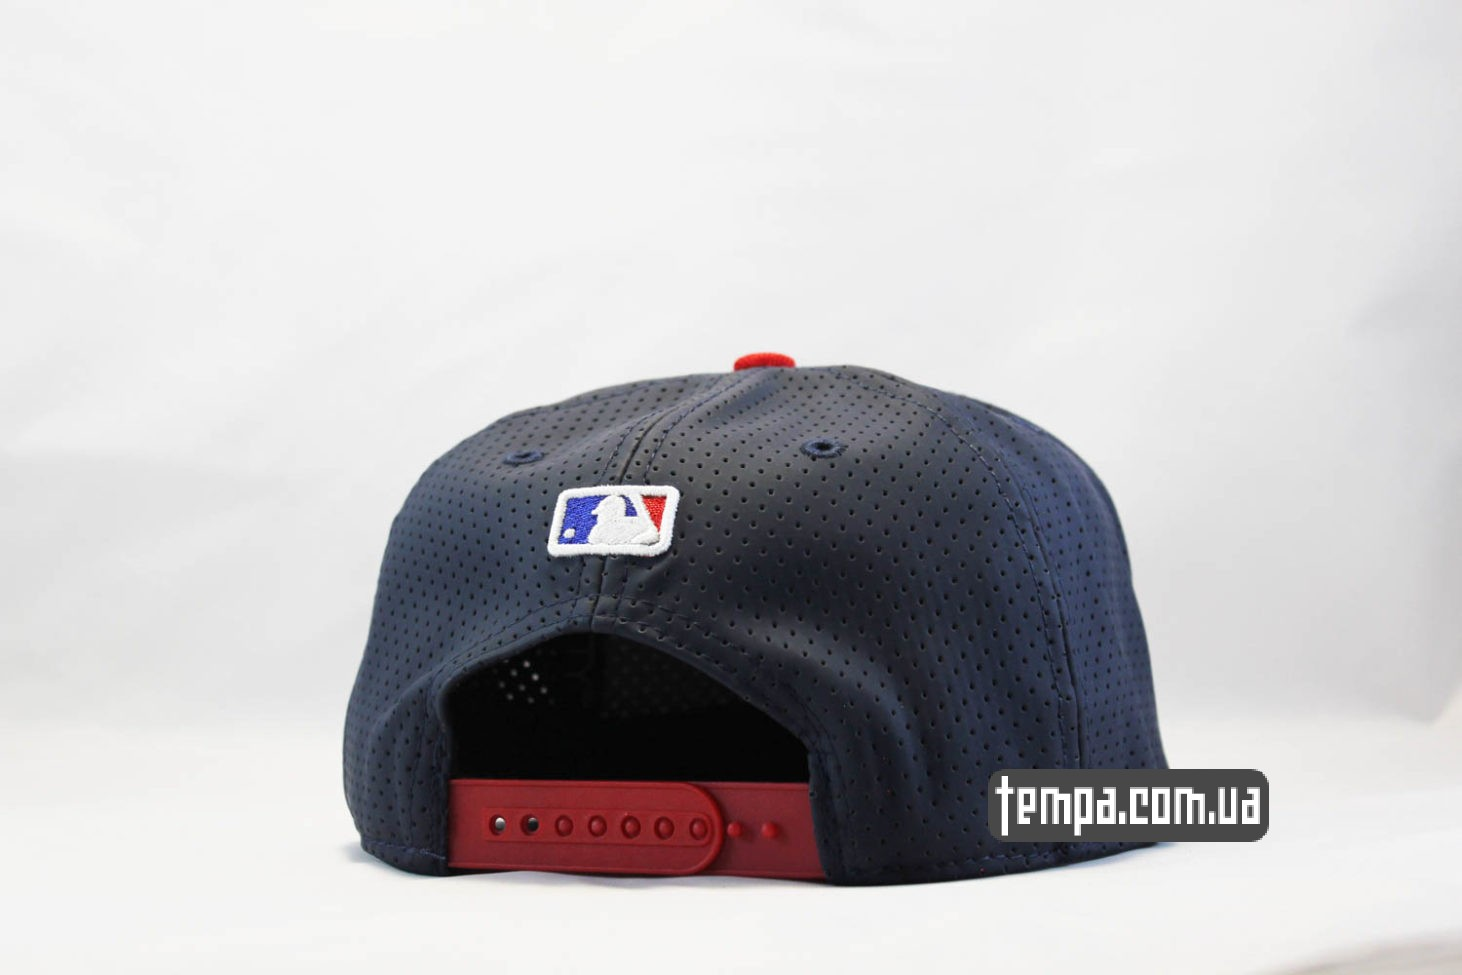 new era снепбеки украина кепка snapback boston redsox NEW ERA trucker с сеткой